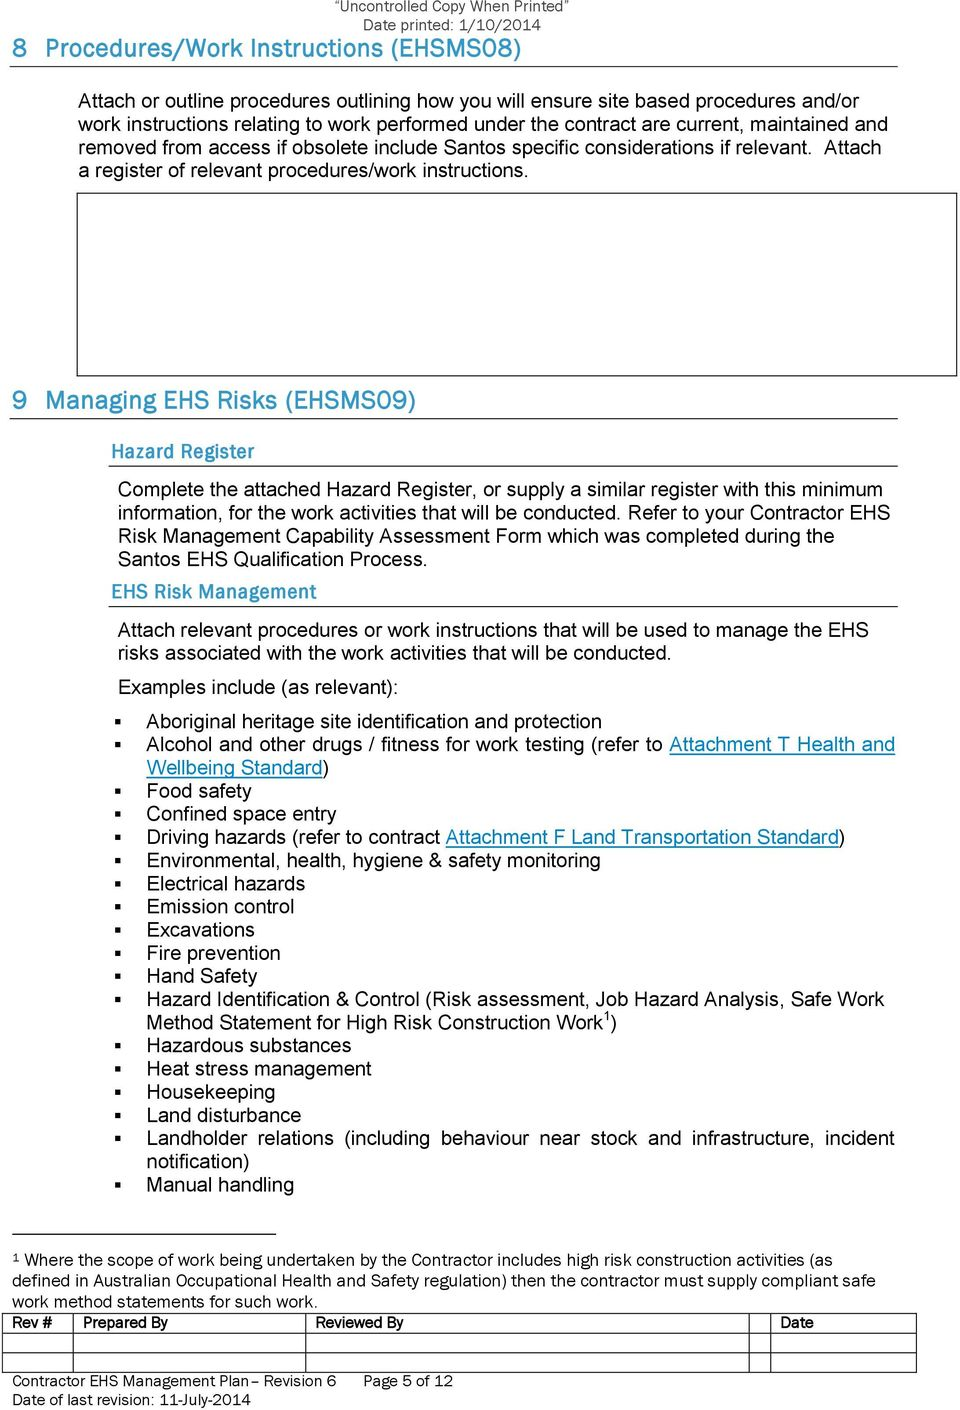 9 Managing EHS Risks (EHSMS09) Hazard Register Complete the attached Hazard Register, or supply a similar register with this minimum information, for the work activities that will be conducted.